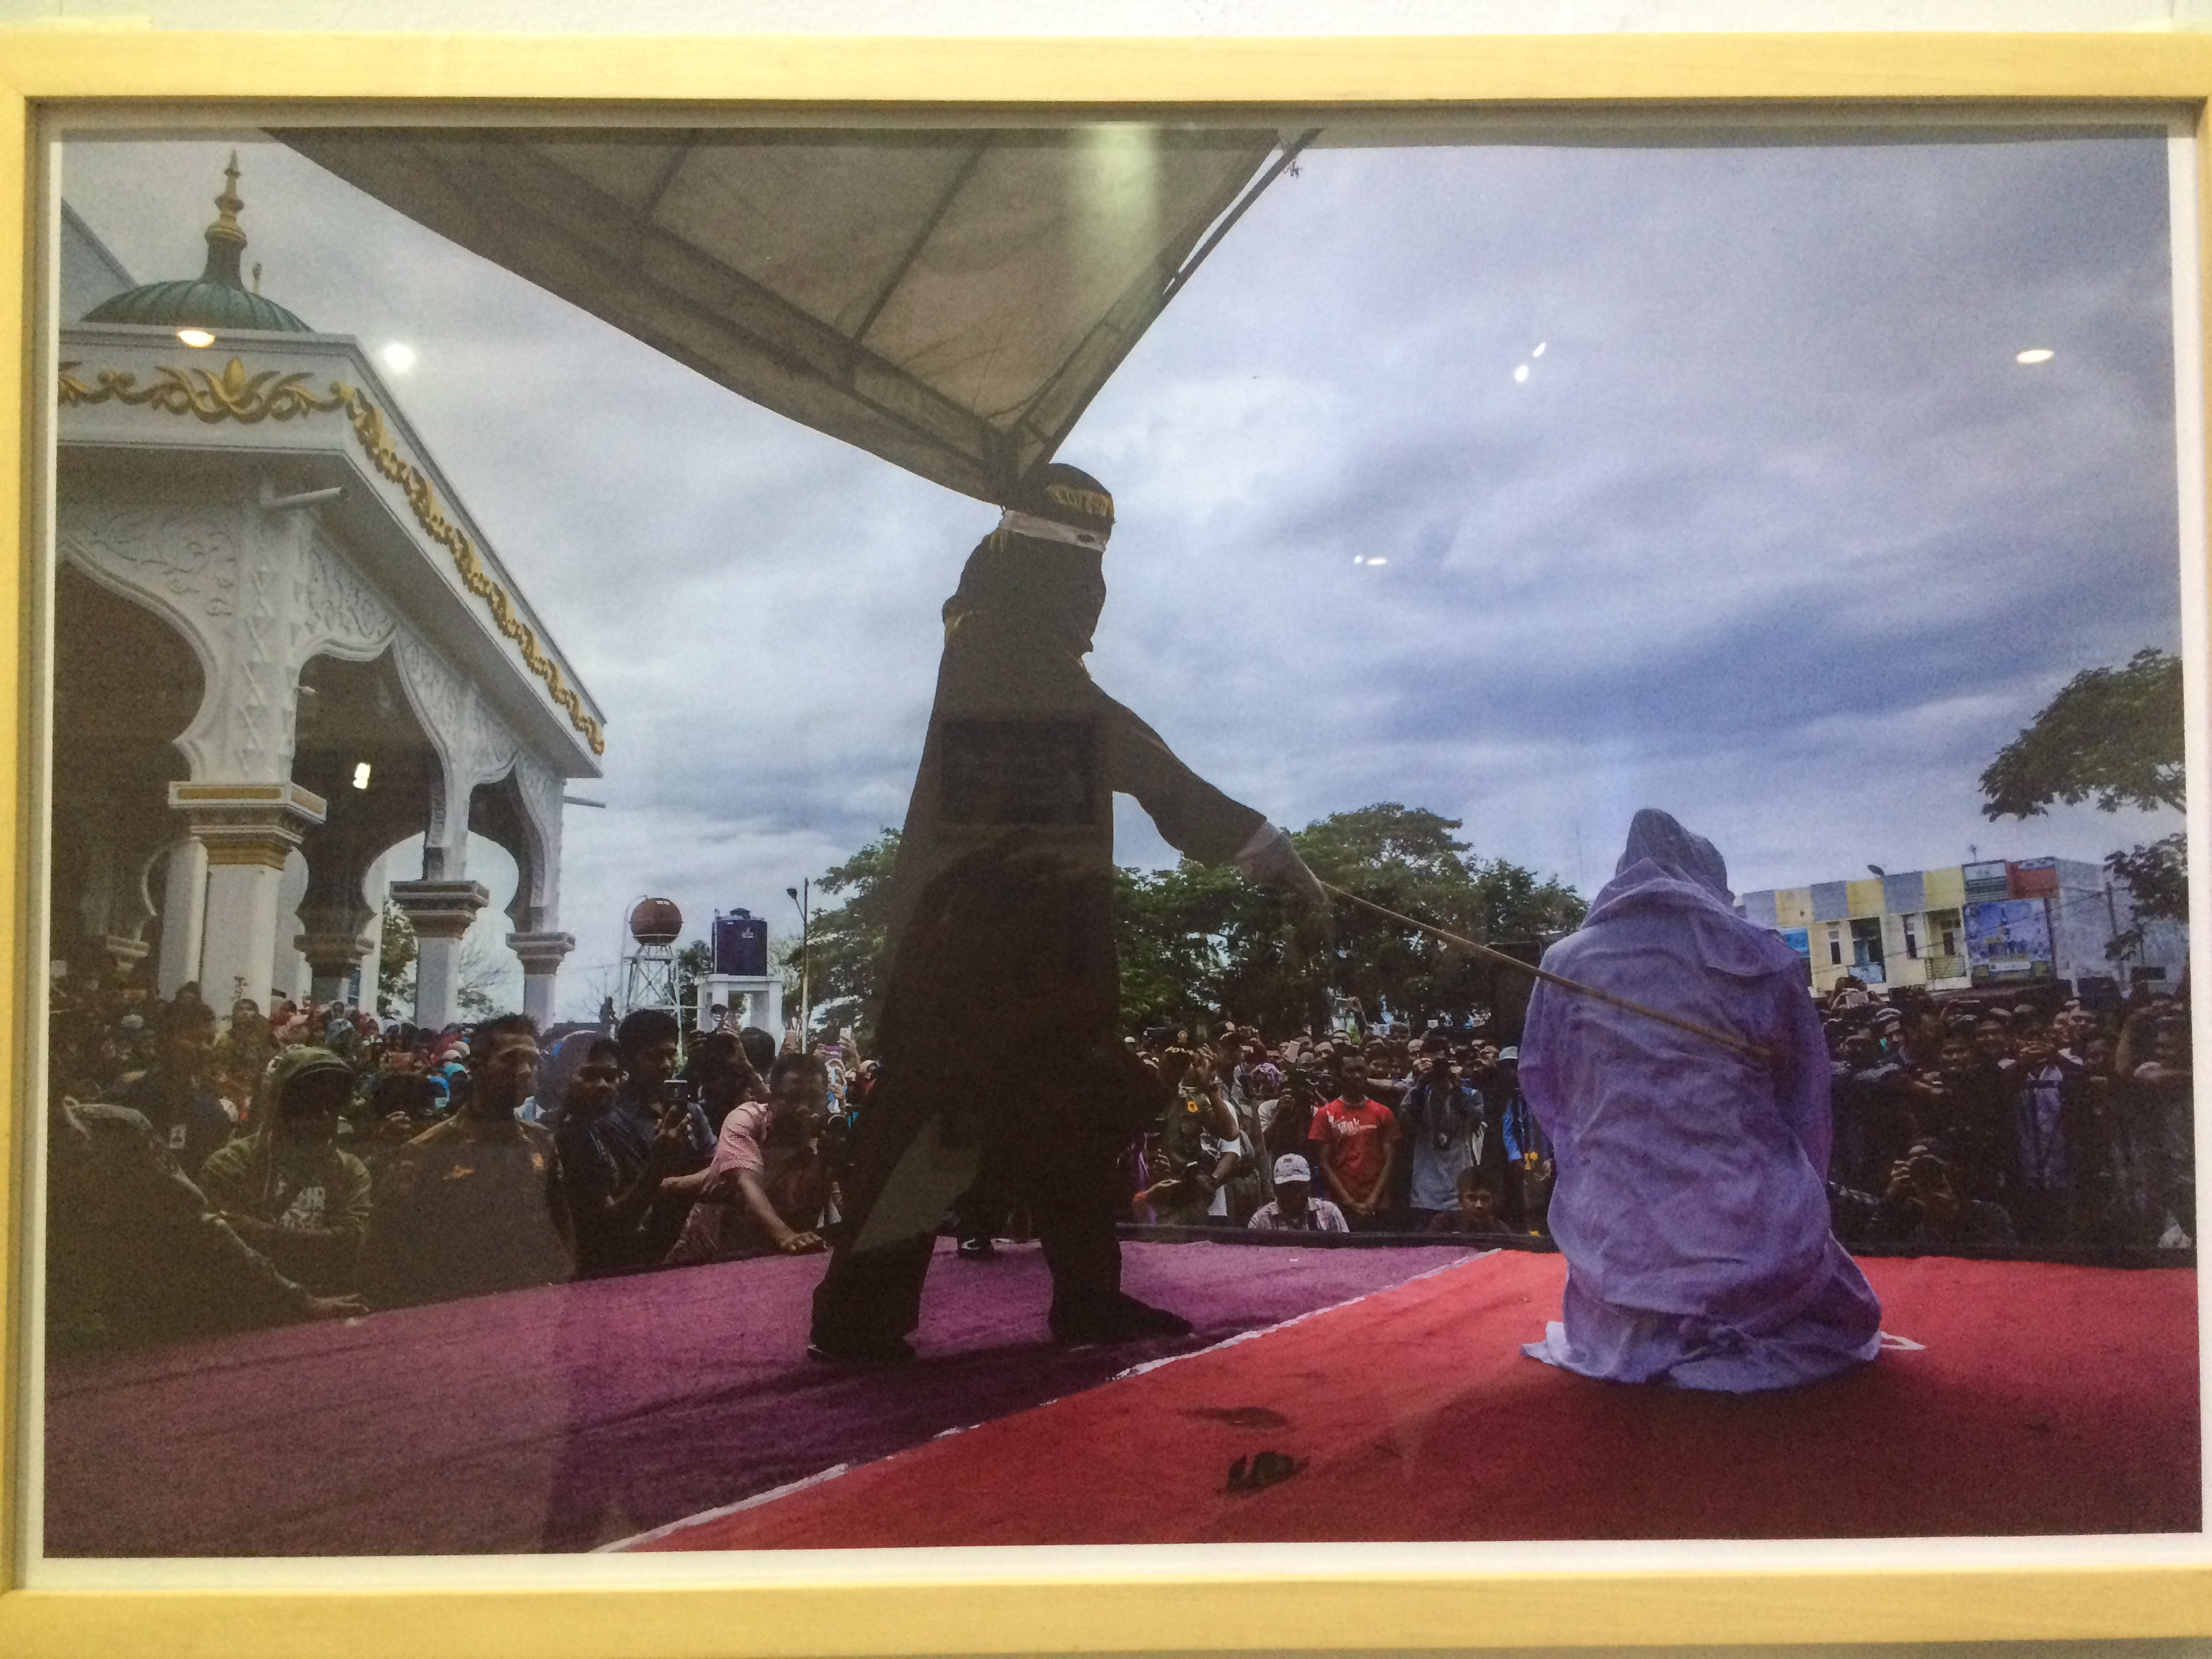 A photo from the exhibit portraying Sharia law at work in Aceh, Sumatra, Indonesia.